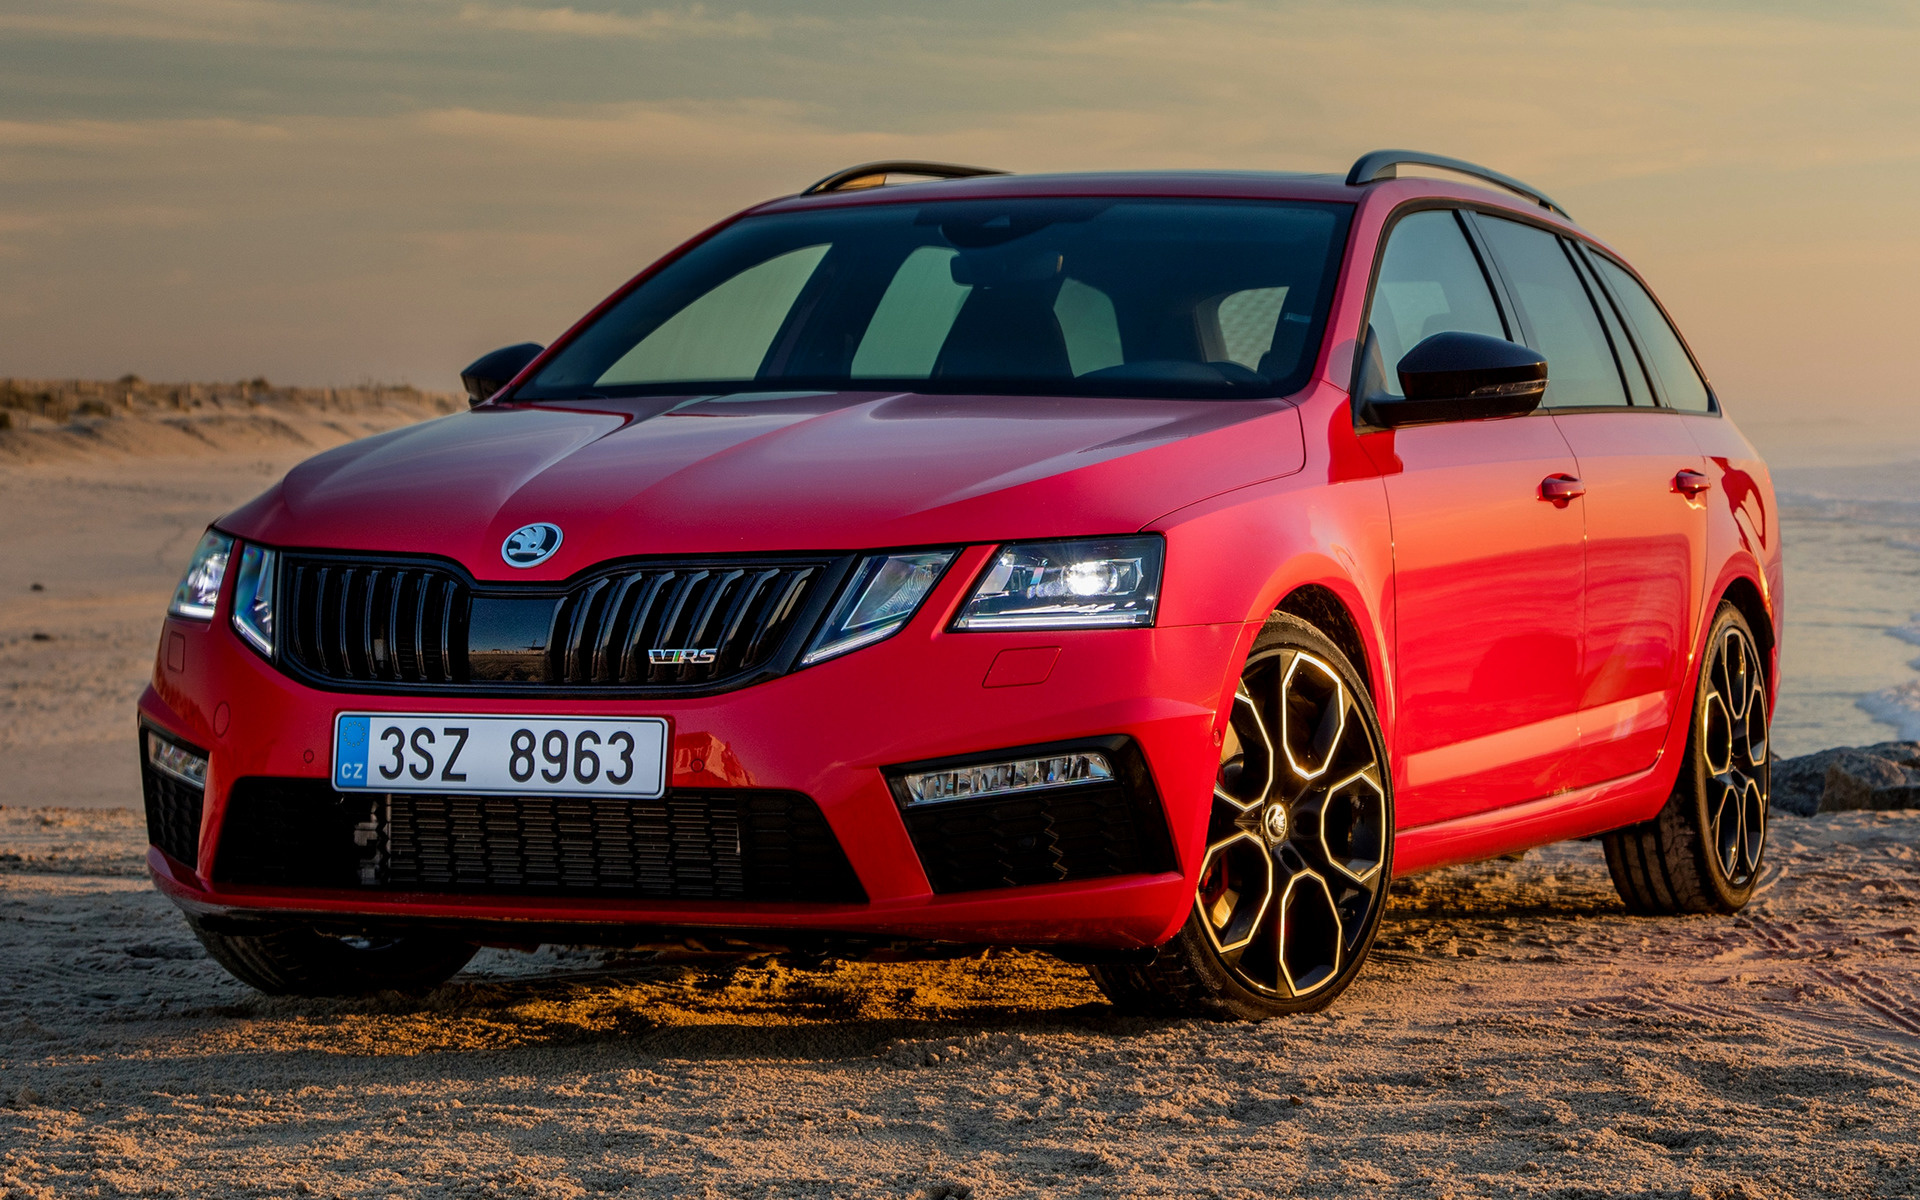 Skoda Octavia RS 245 Combi (2017) Wallpapers and HD Images - Car Pixel